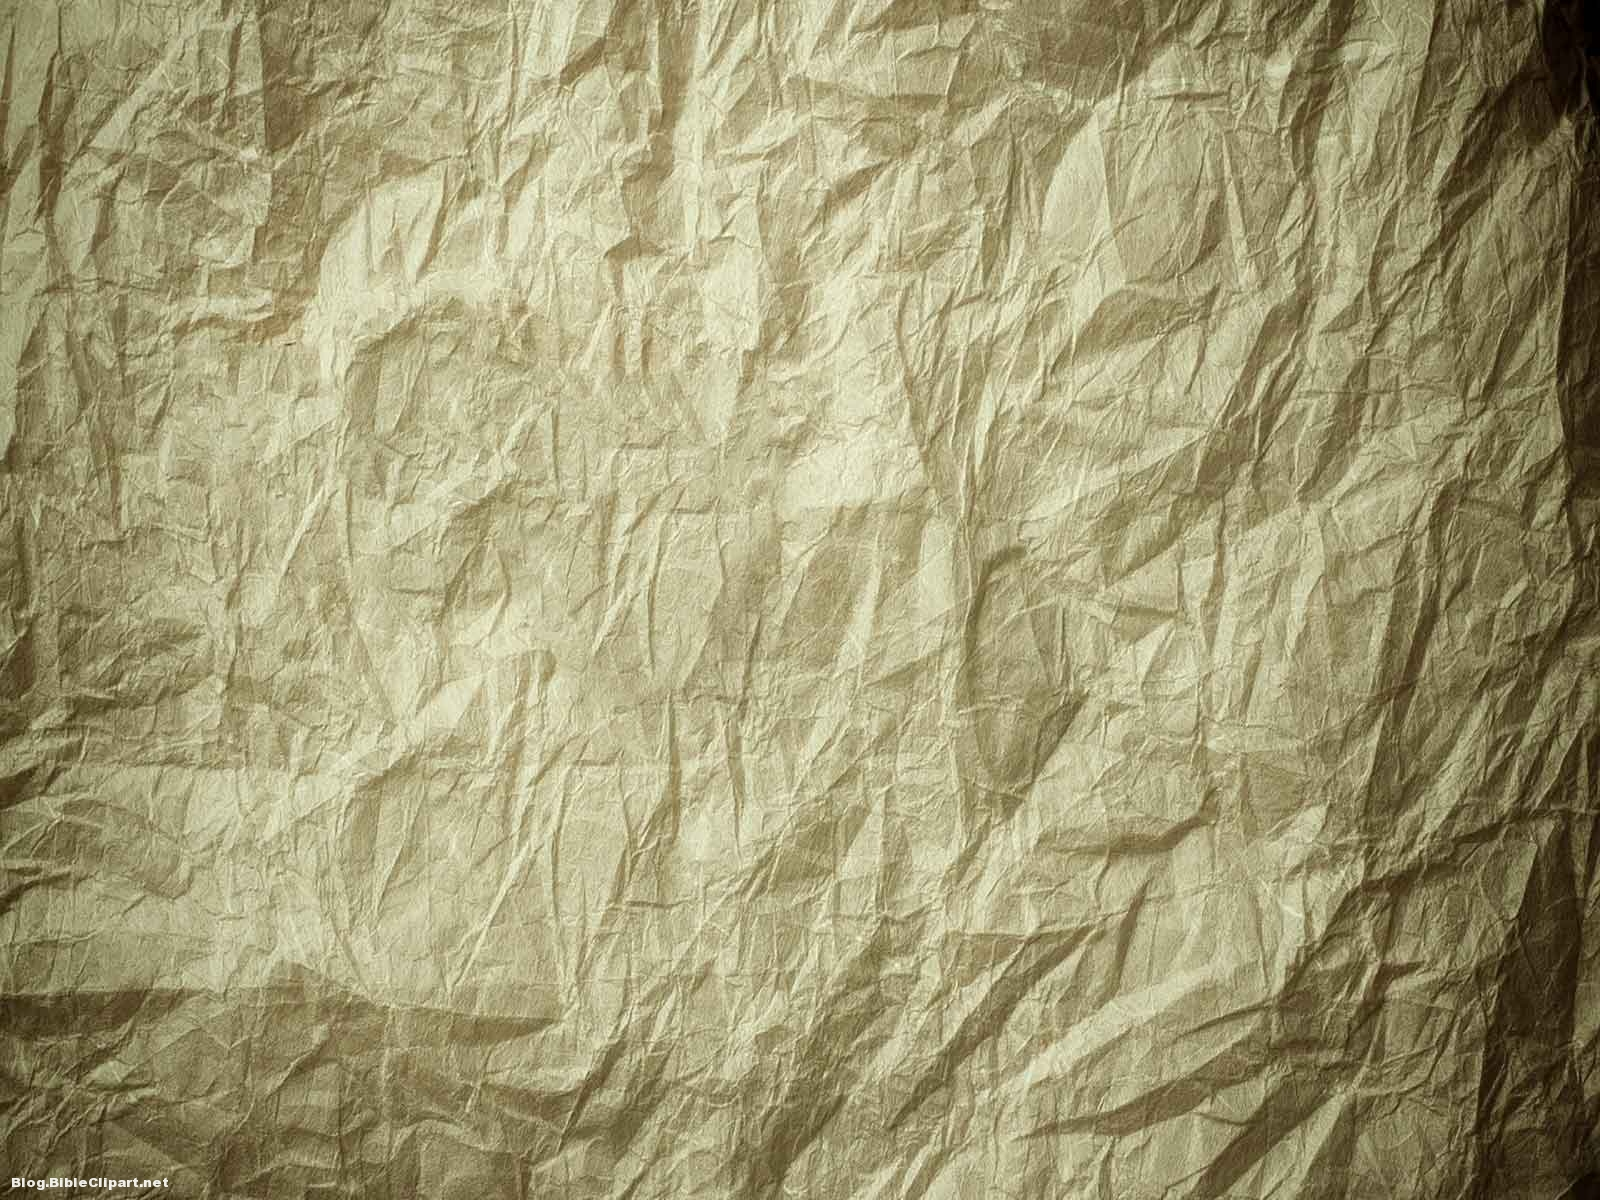 Crumpled Paper Background for Powerpoint – Blog BibleClipart